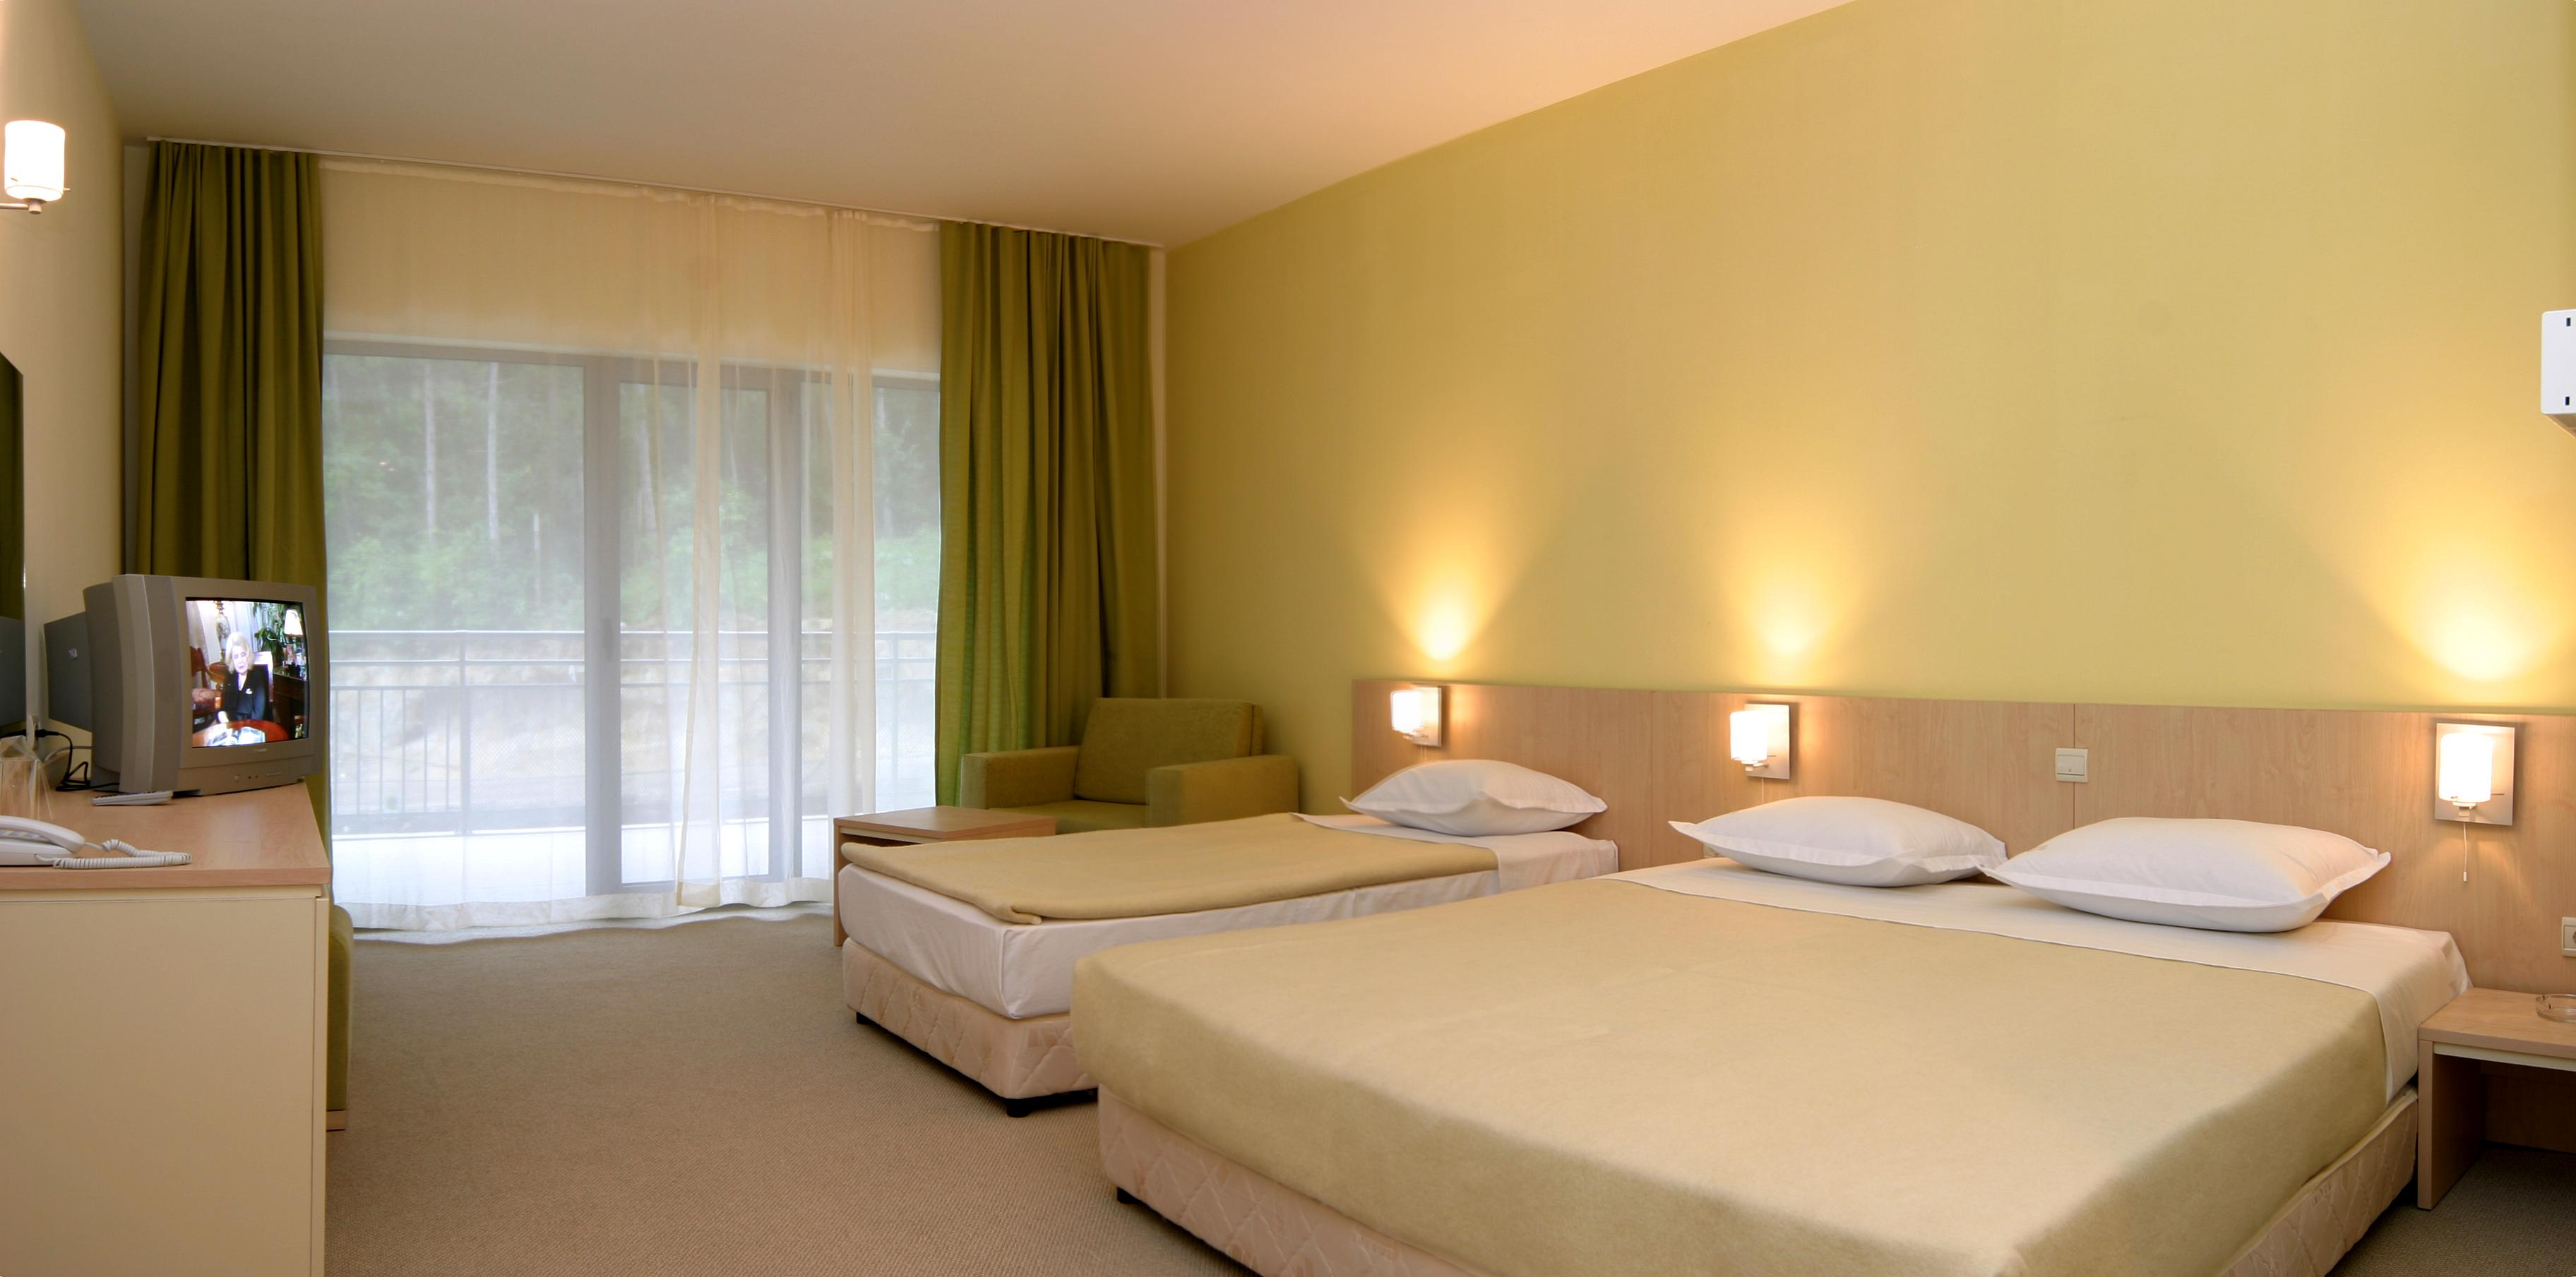 Park Hotel Golden Beach - Tripla